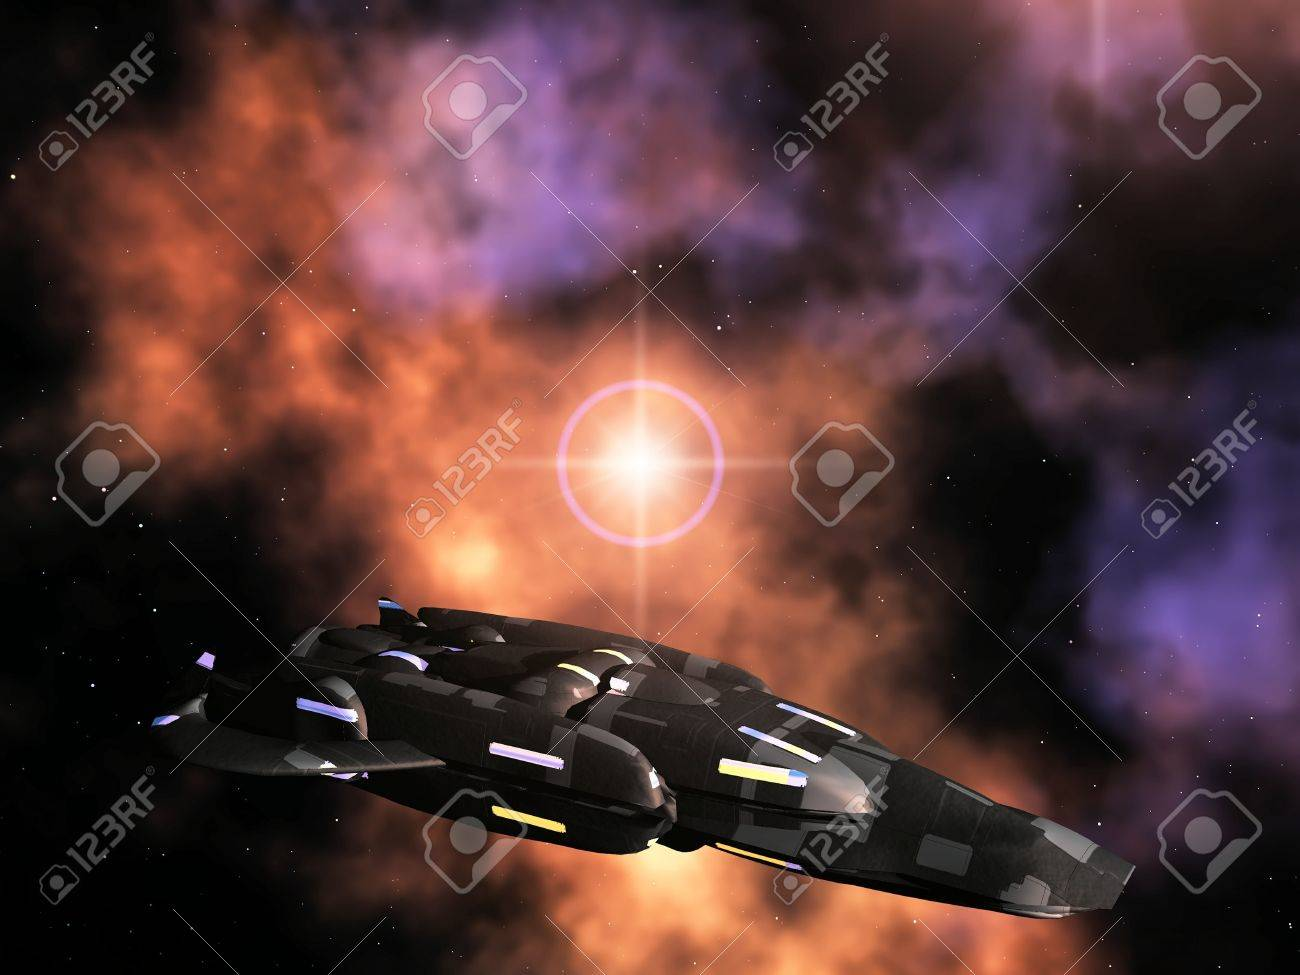 spaceship  against a galaxies background Stock Photo - 10956865